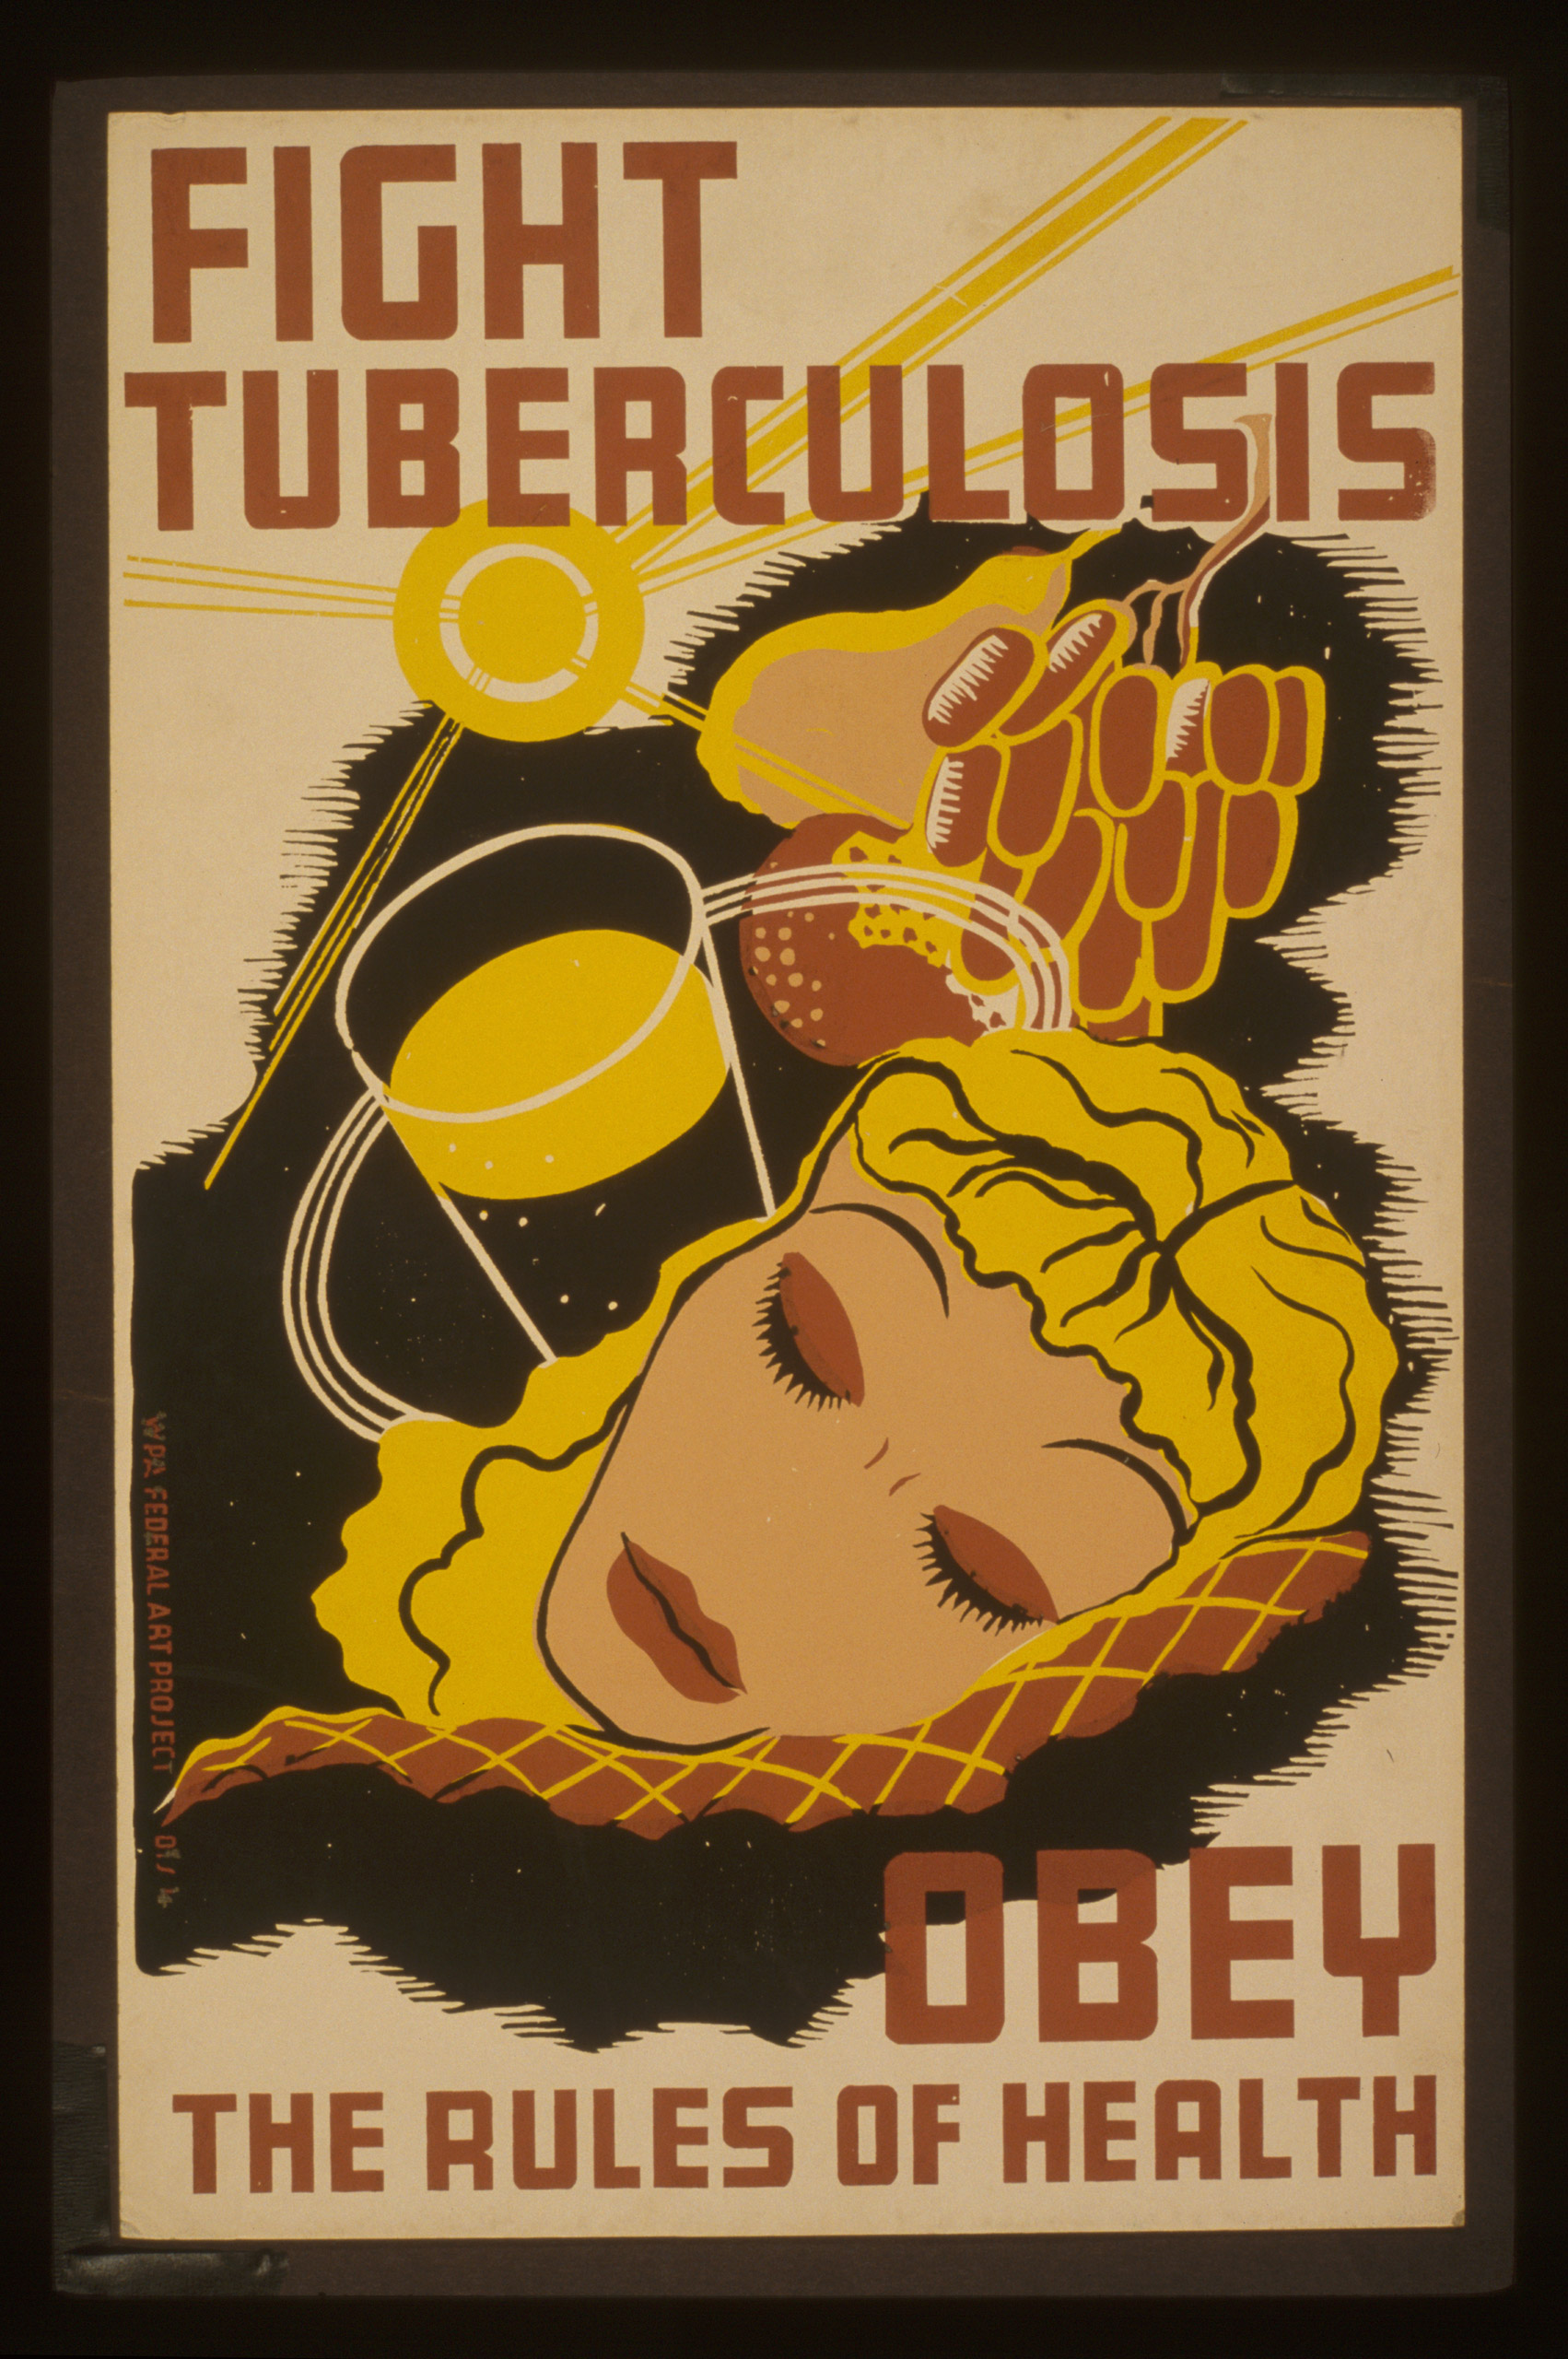 Poster promoting better health care through the prevention of tuberculosis by better eating and sleeping habits, and more exposure to sunshine. Created between 1936 and 1941.